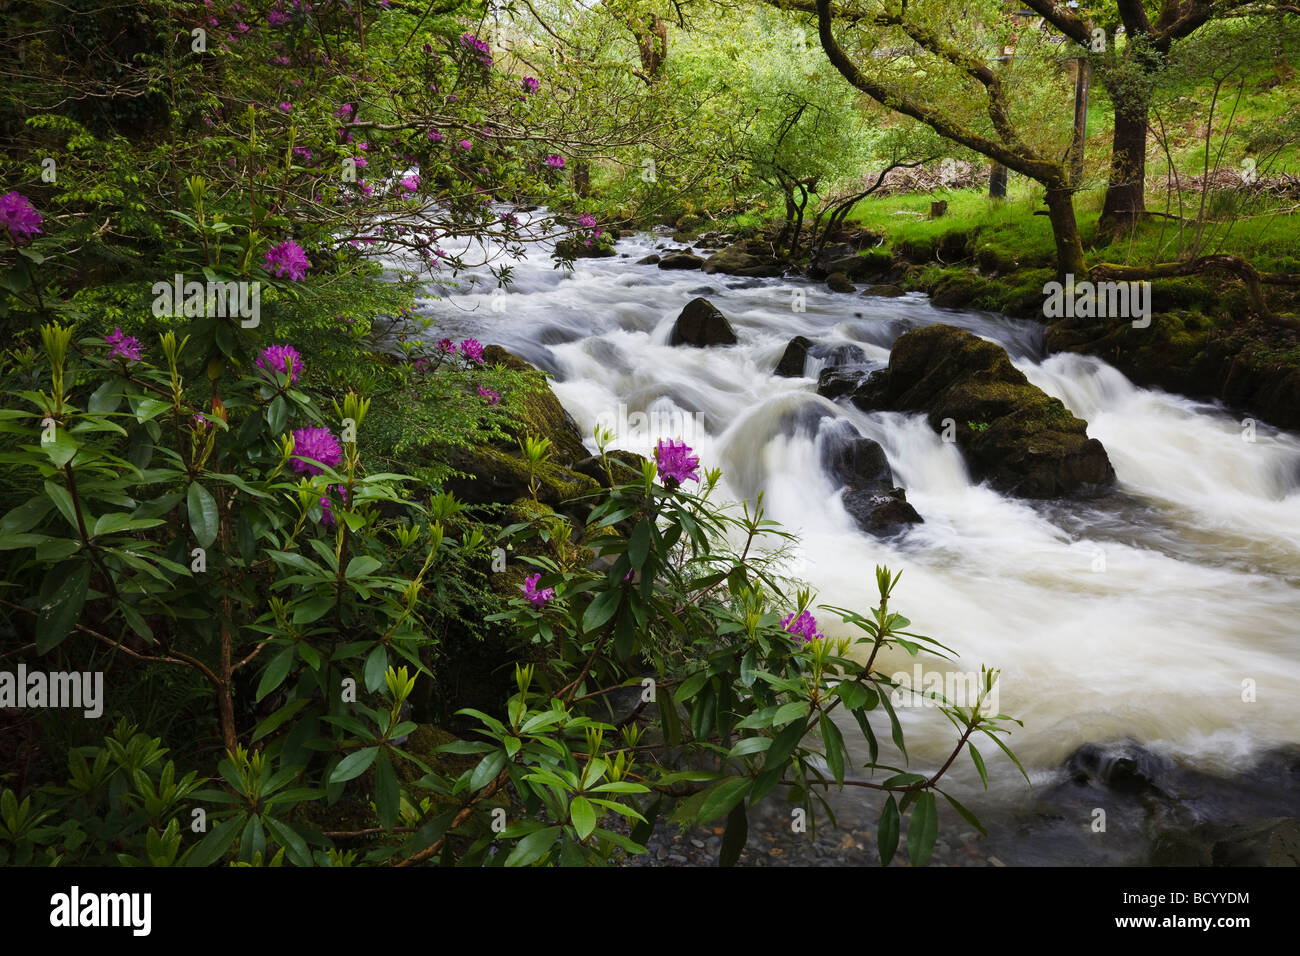 Rododendrons in flower beside the River Colwyn near Beddgelert, Snowdonia National Park, Wales - Stock Image